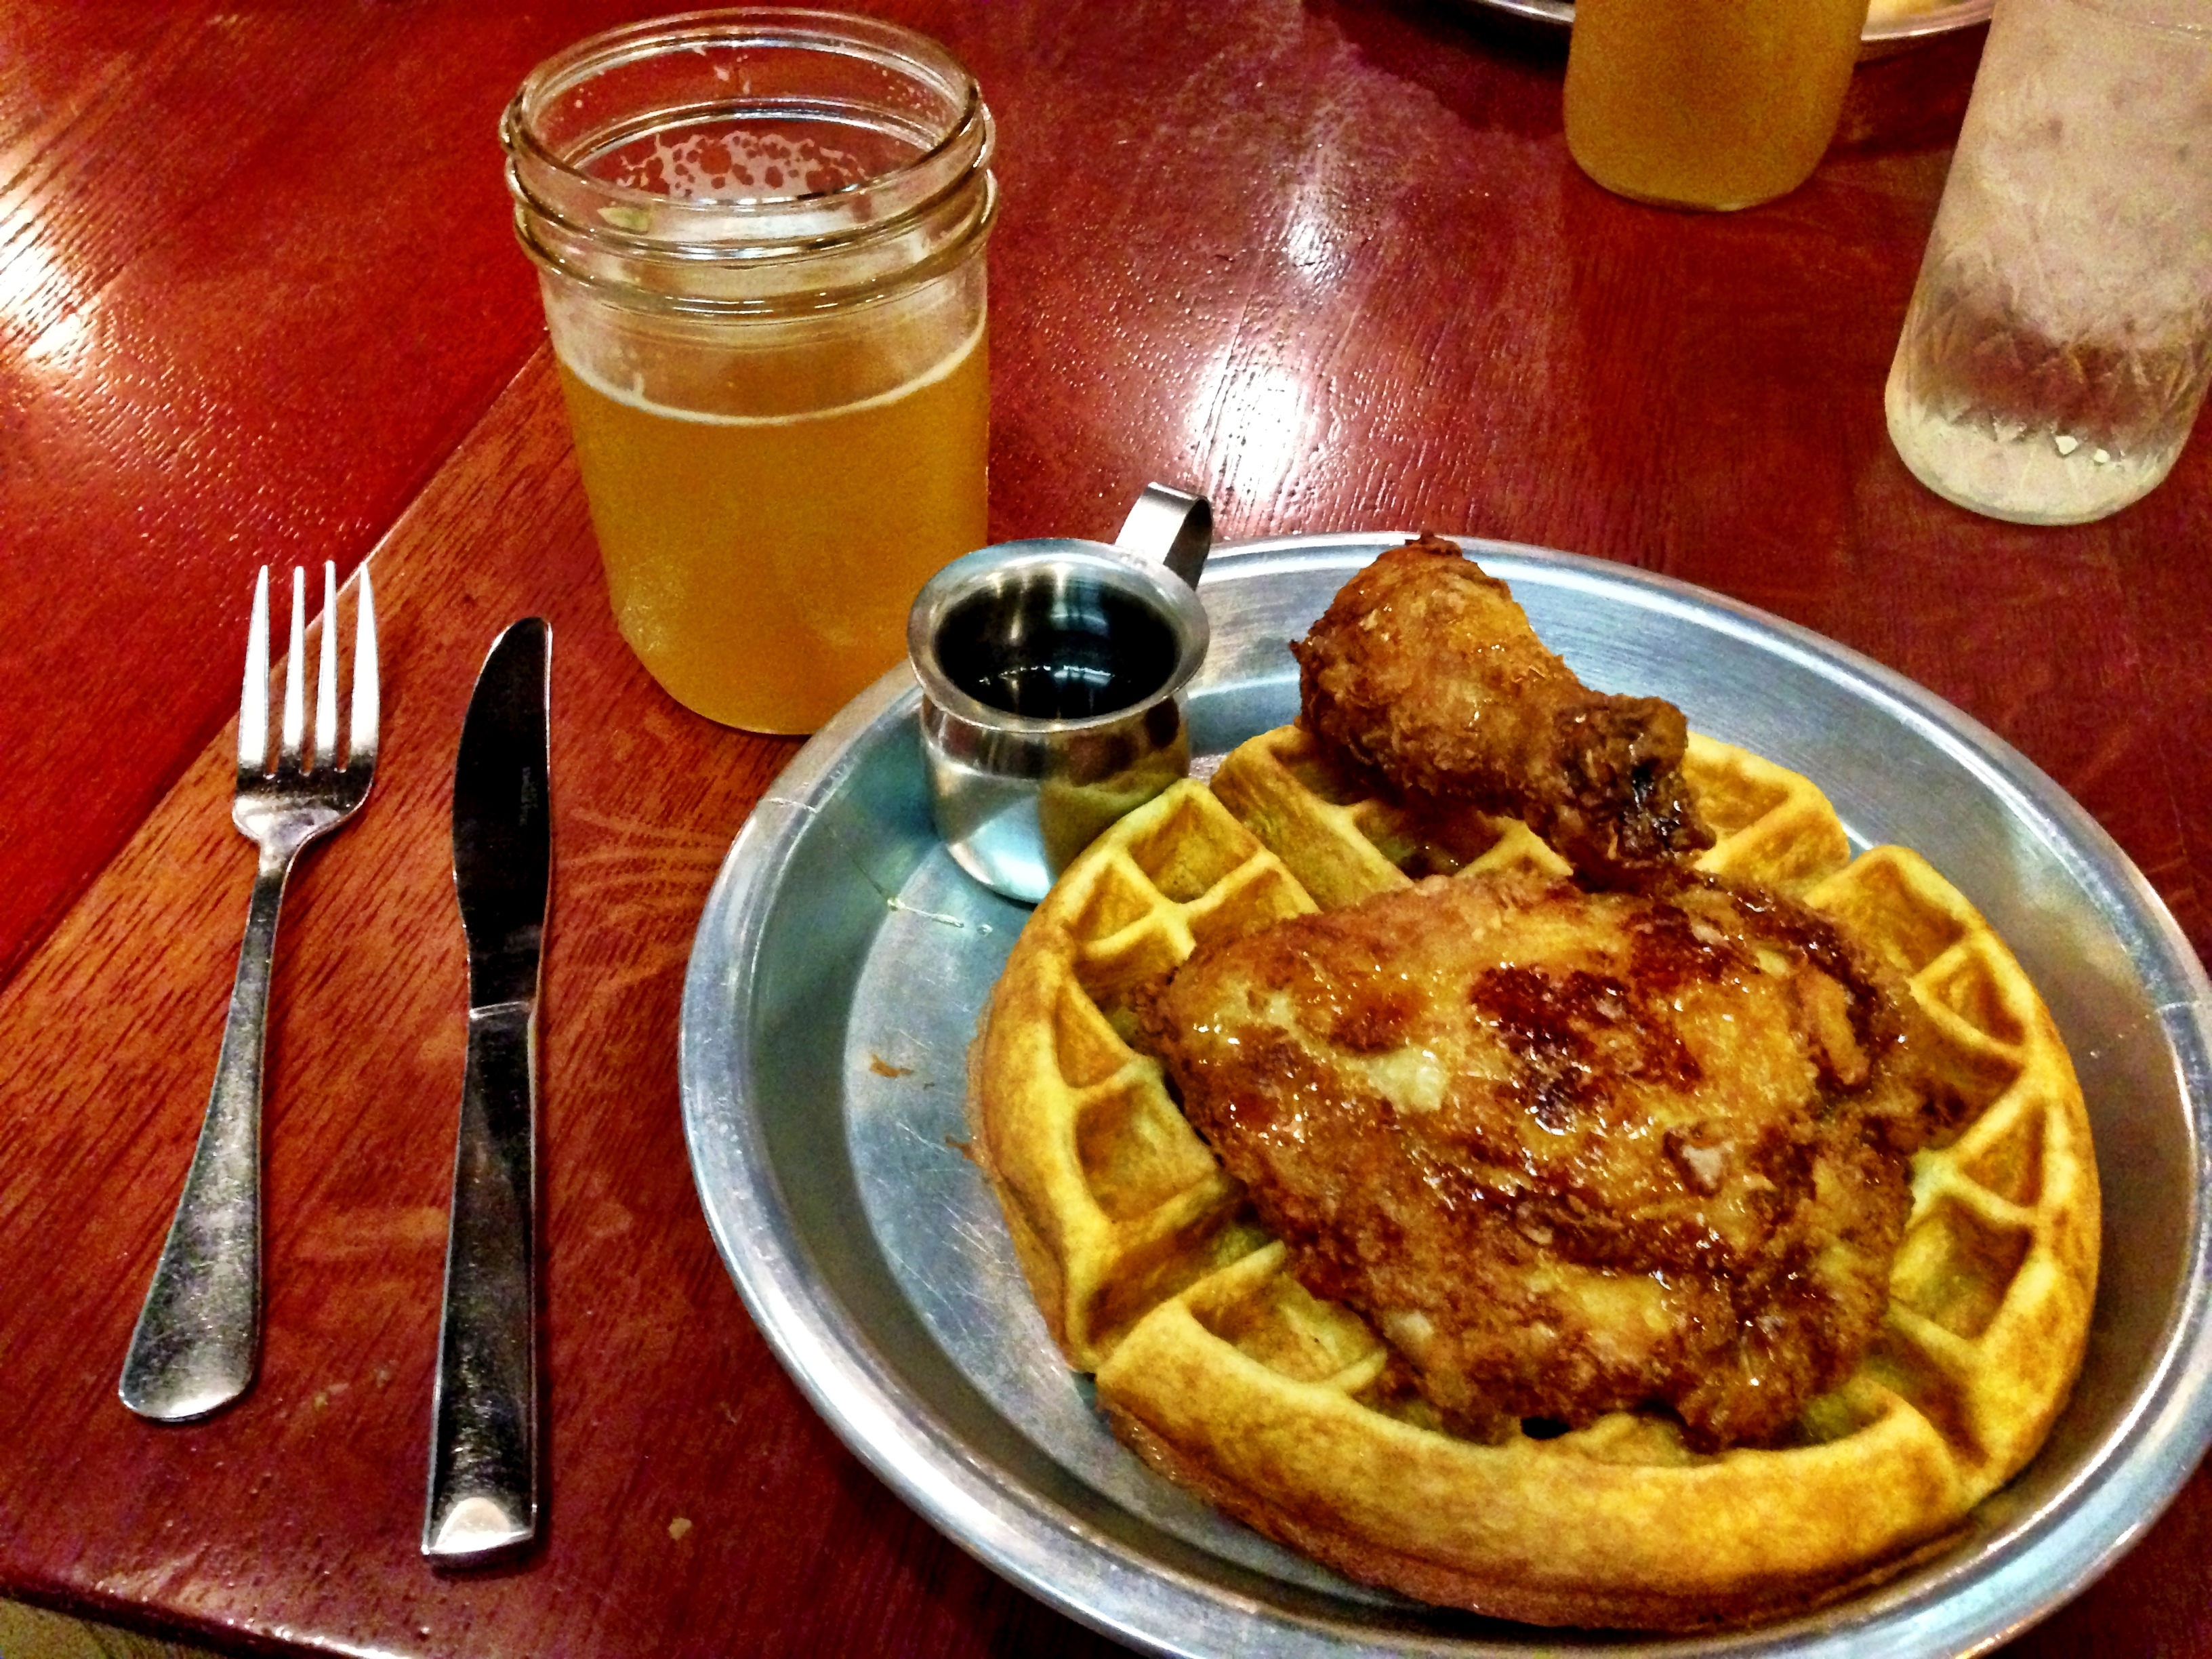 Chicken and waffles, black pepper honey beer ~ livin' large...